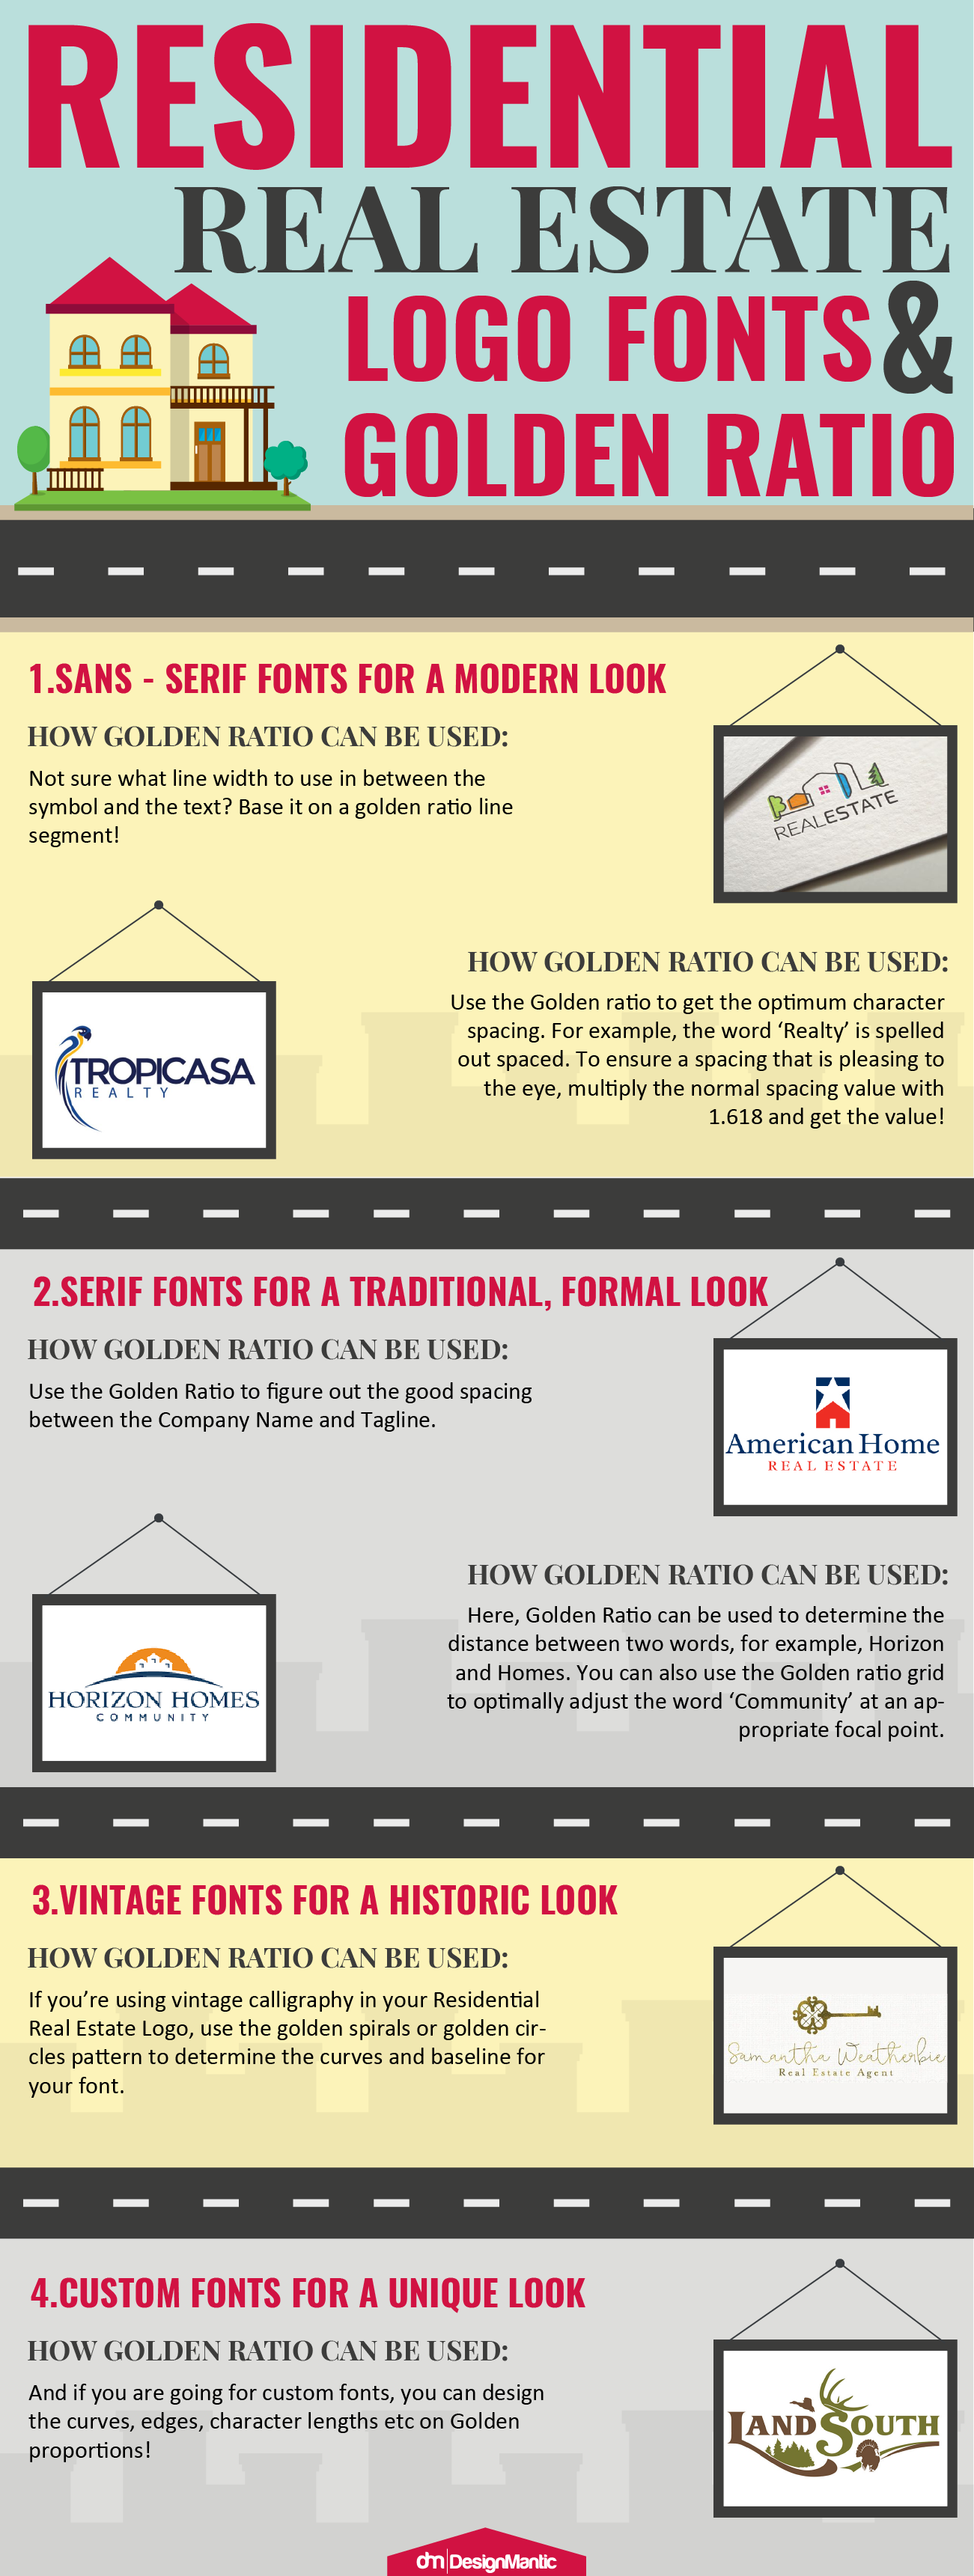 Residential Real Estate Logo Fonts And Golden Ratio